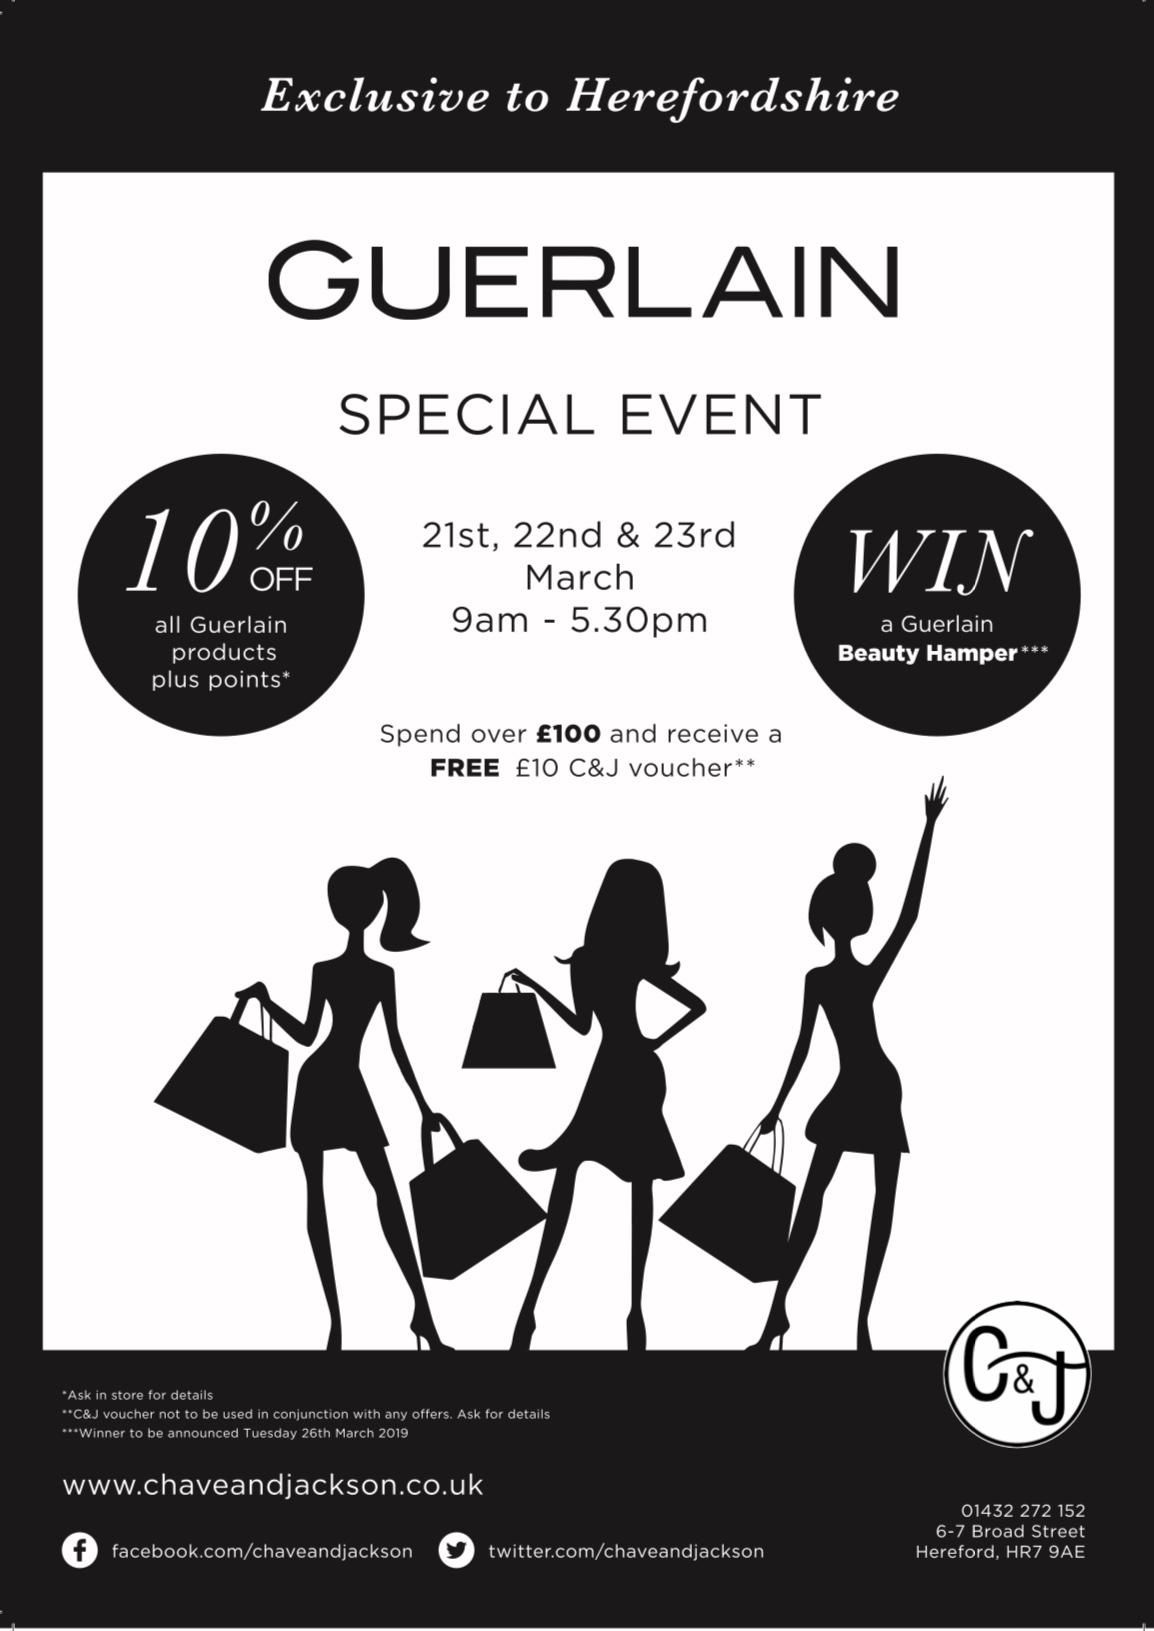 Join us at our Special Guerlain Event from 21st to 23rd March 2019